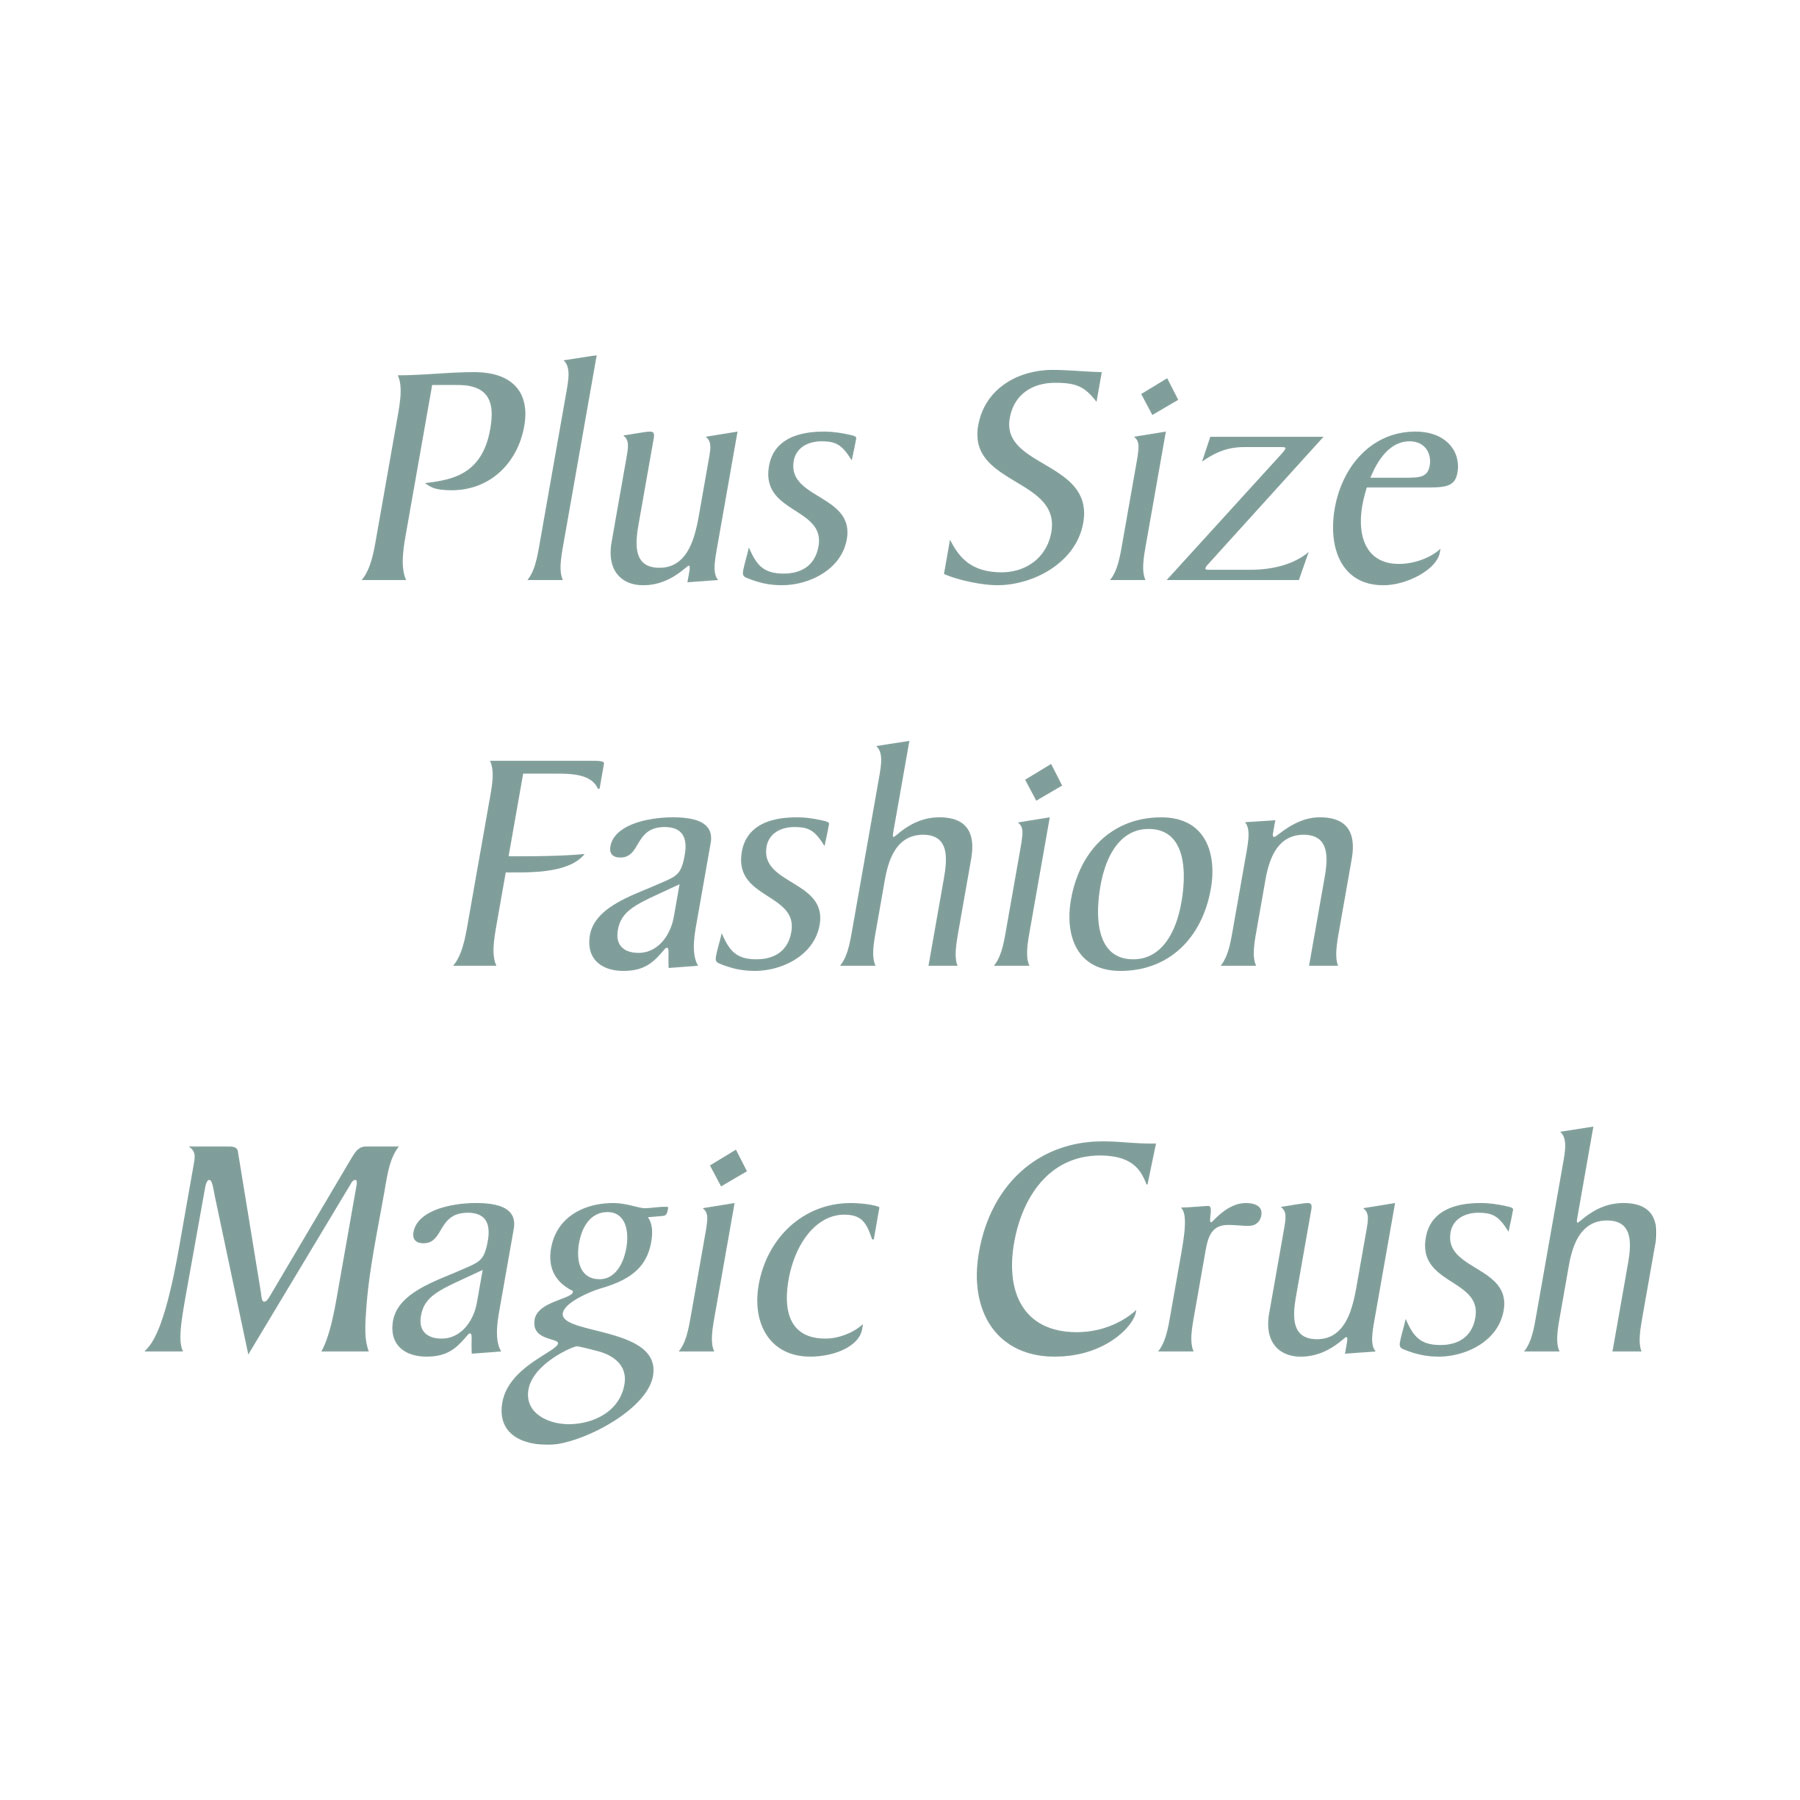 Magic Crush Shirts